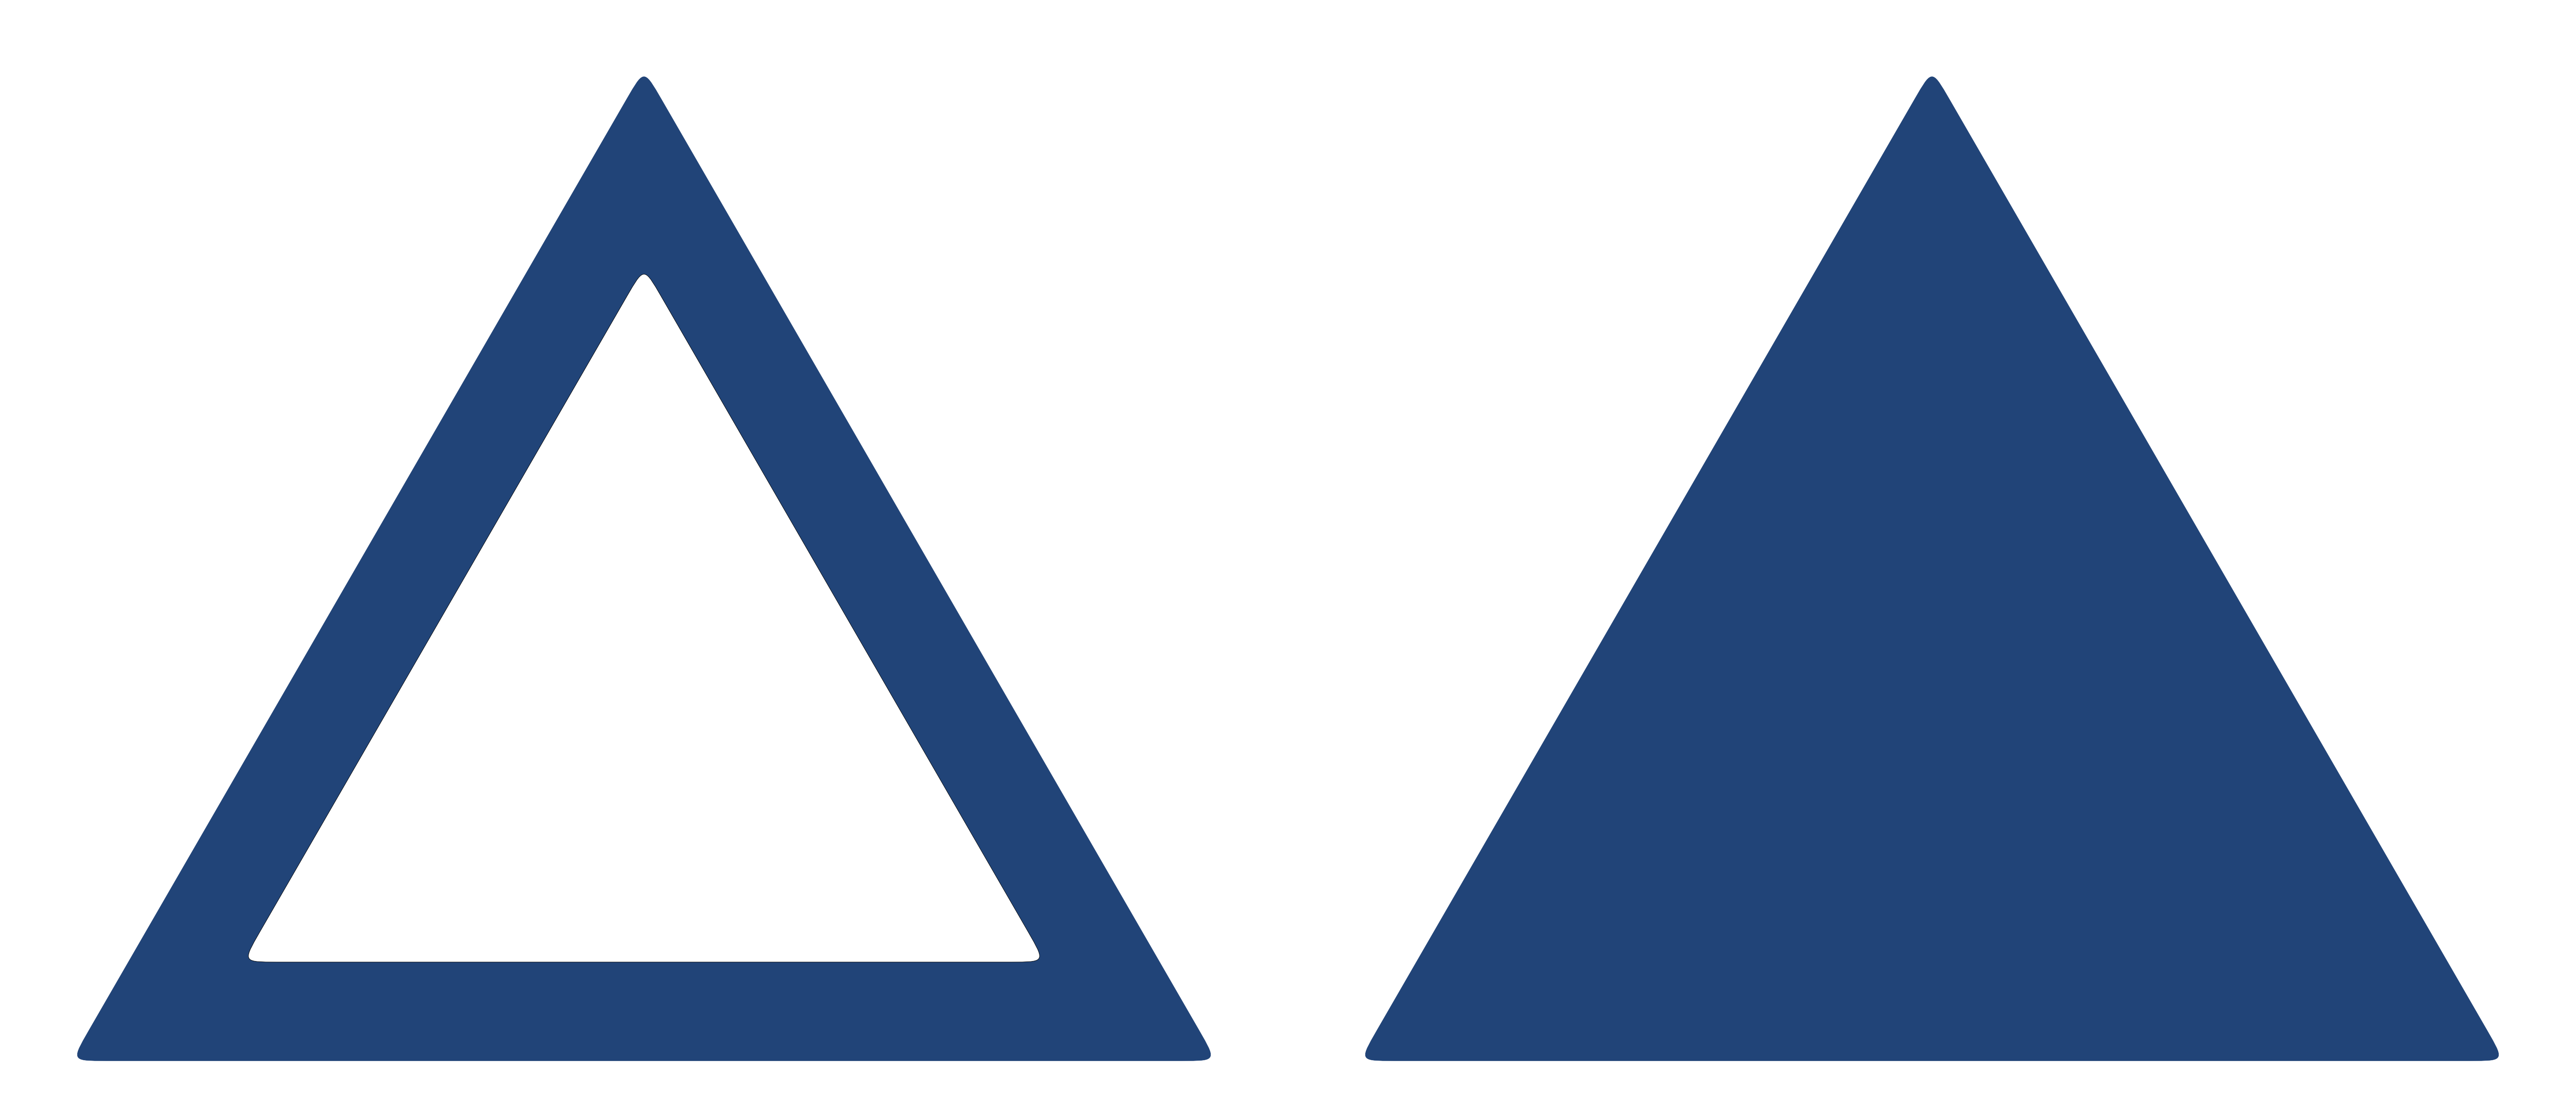 Blue triangle png. Sign model stock by